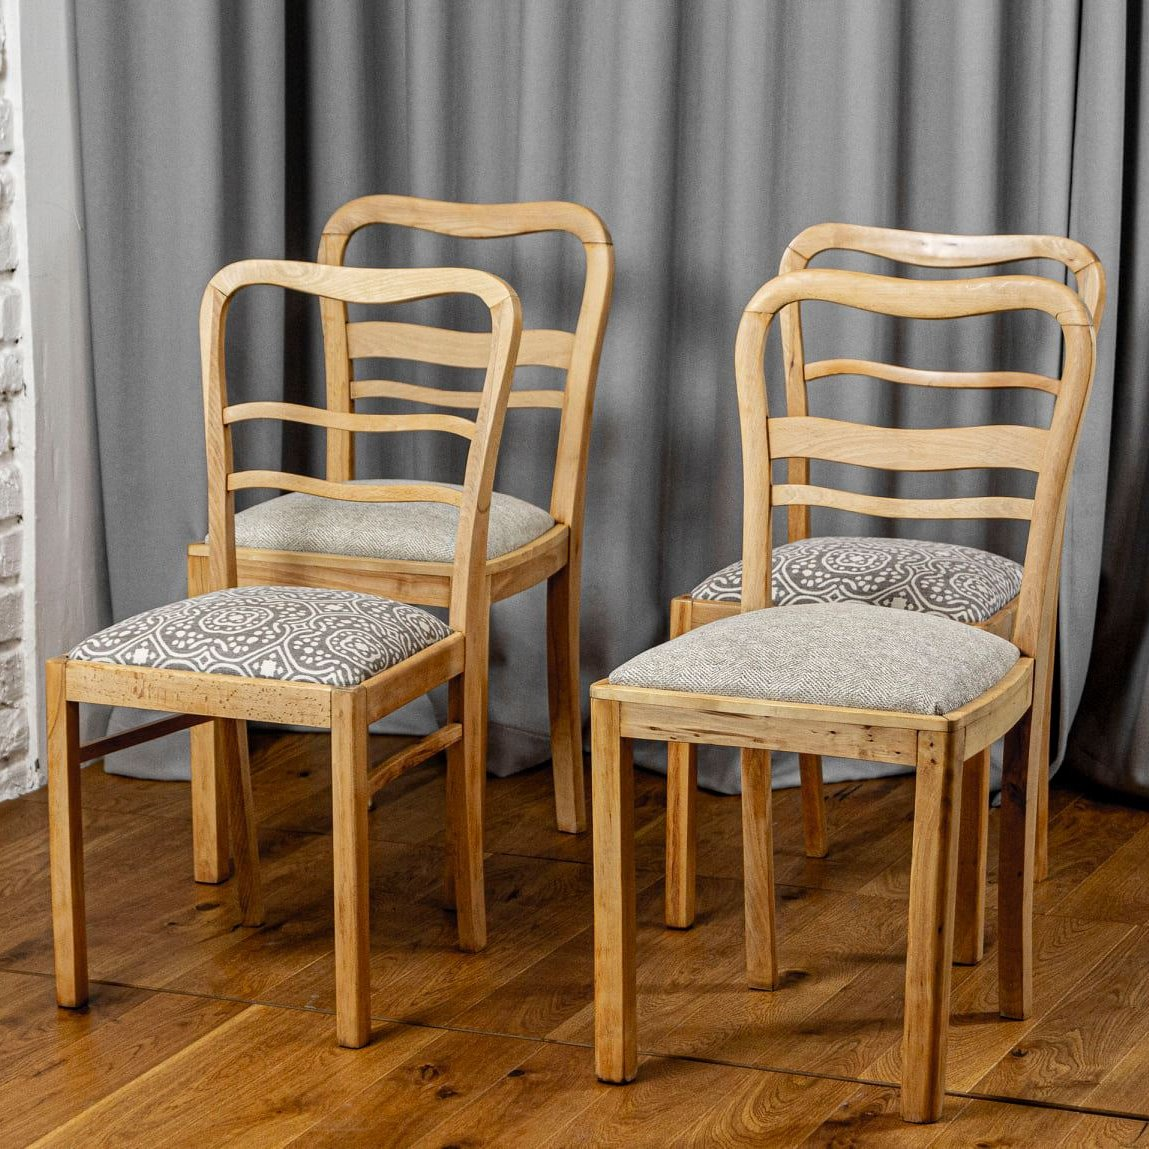 Set Of 4 Light Bent Wood Dining Chairs 1950s 149872